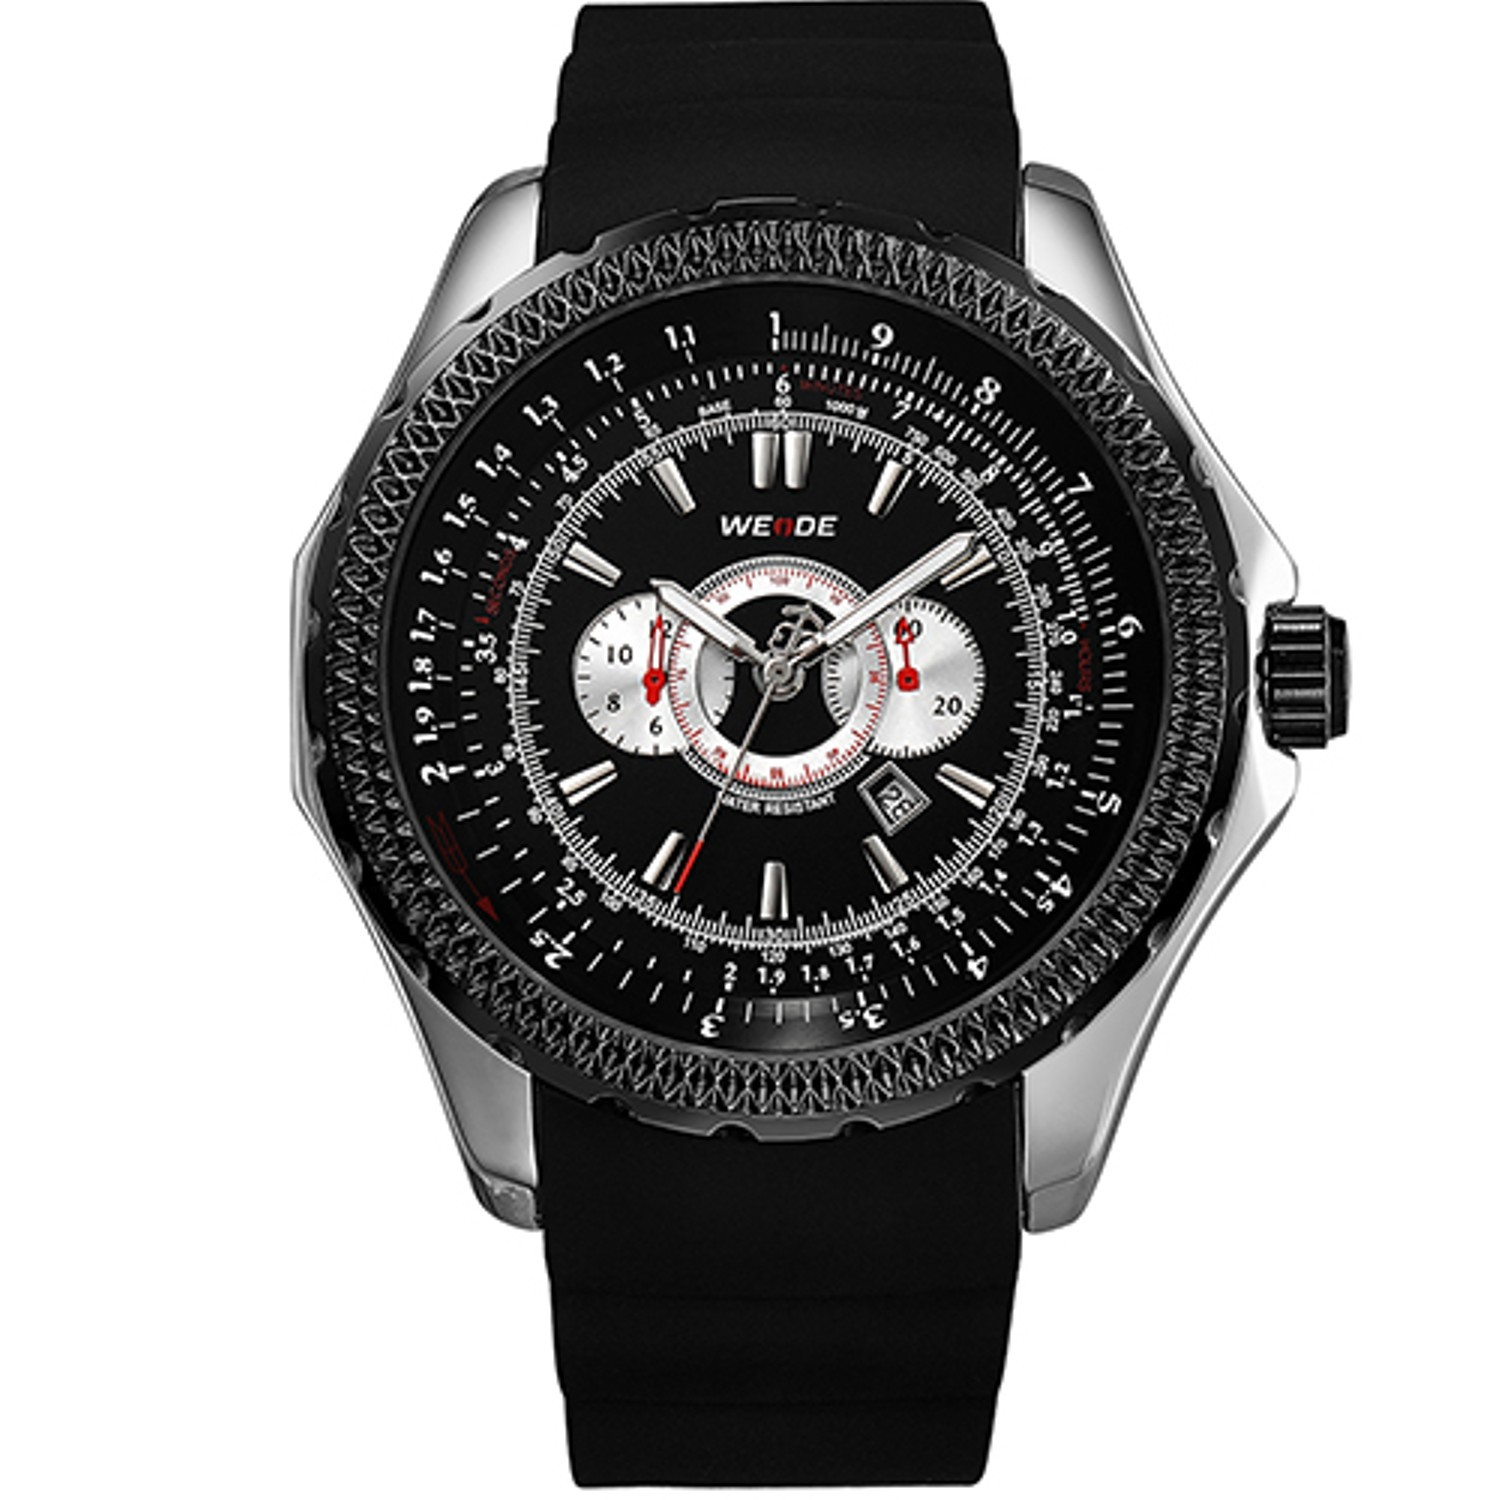 WEIDE-Silver-Case-Rubber-Strap-Buckle-Stainless-Steel-Buckle-Date-Calendar-Display-Analog-Mens-Outdoor-Sport_1500x1500_STRETCH_Black Dial.jpg